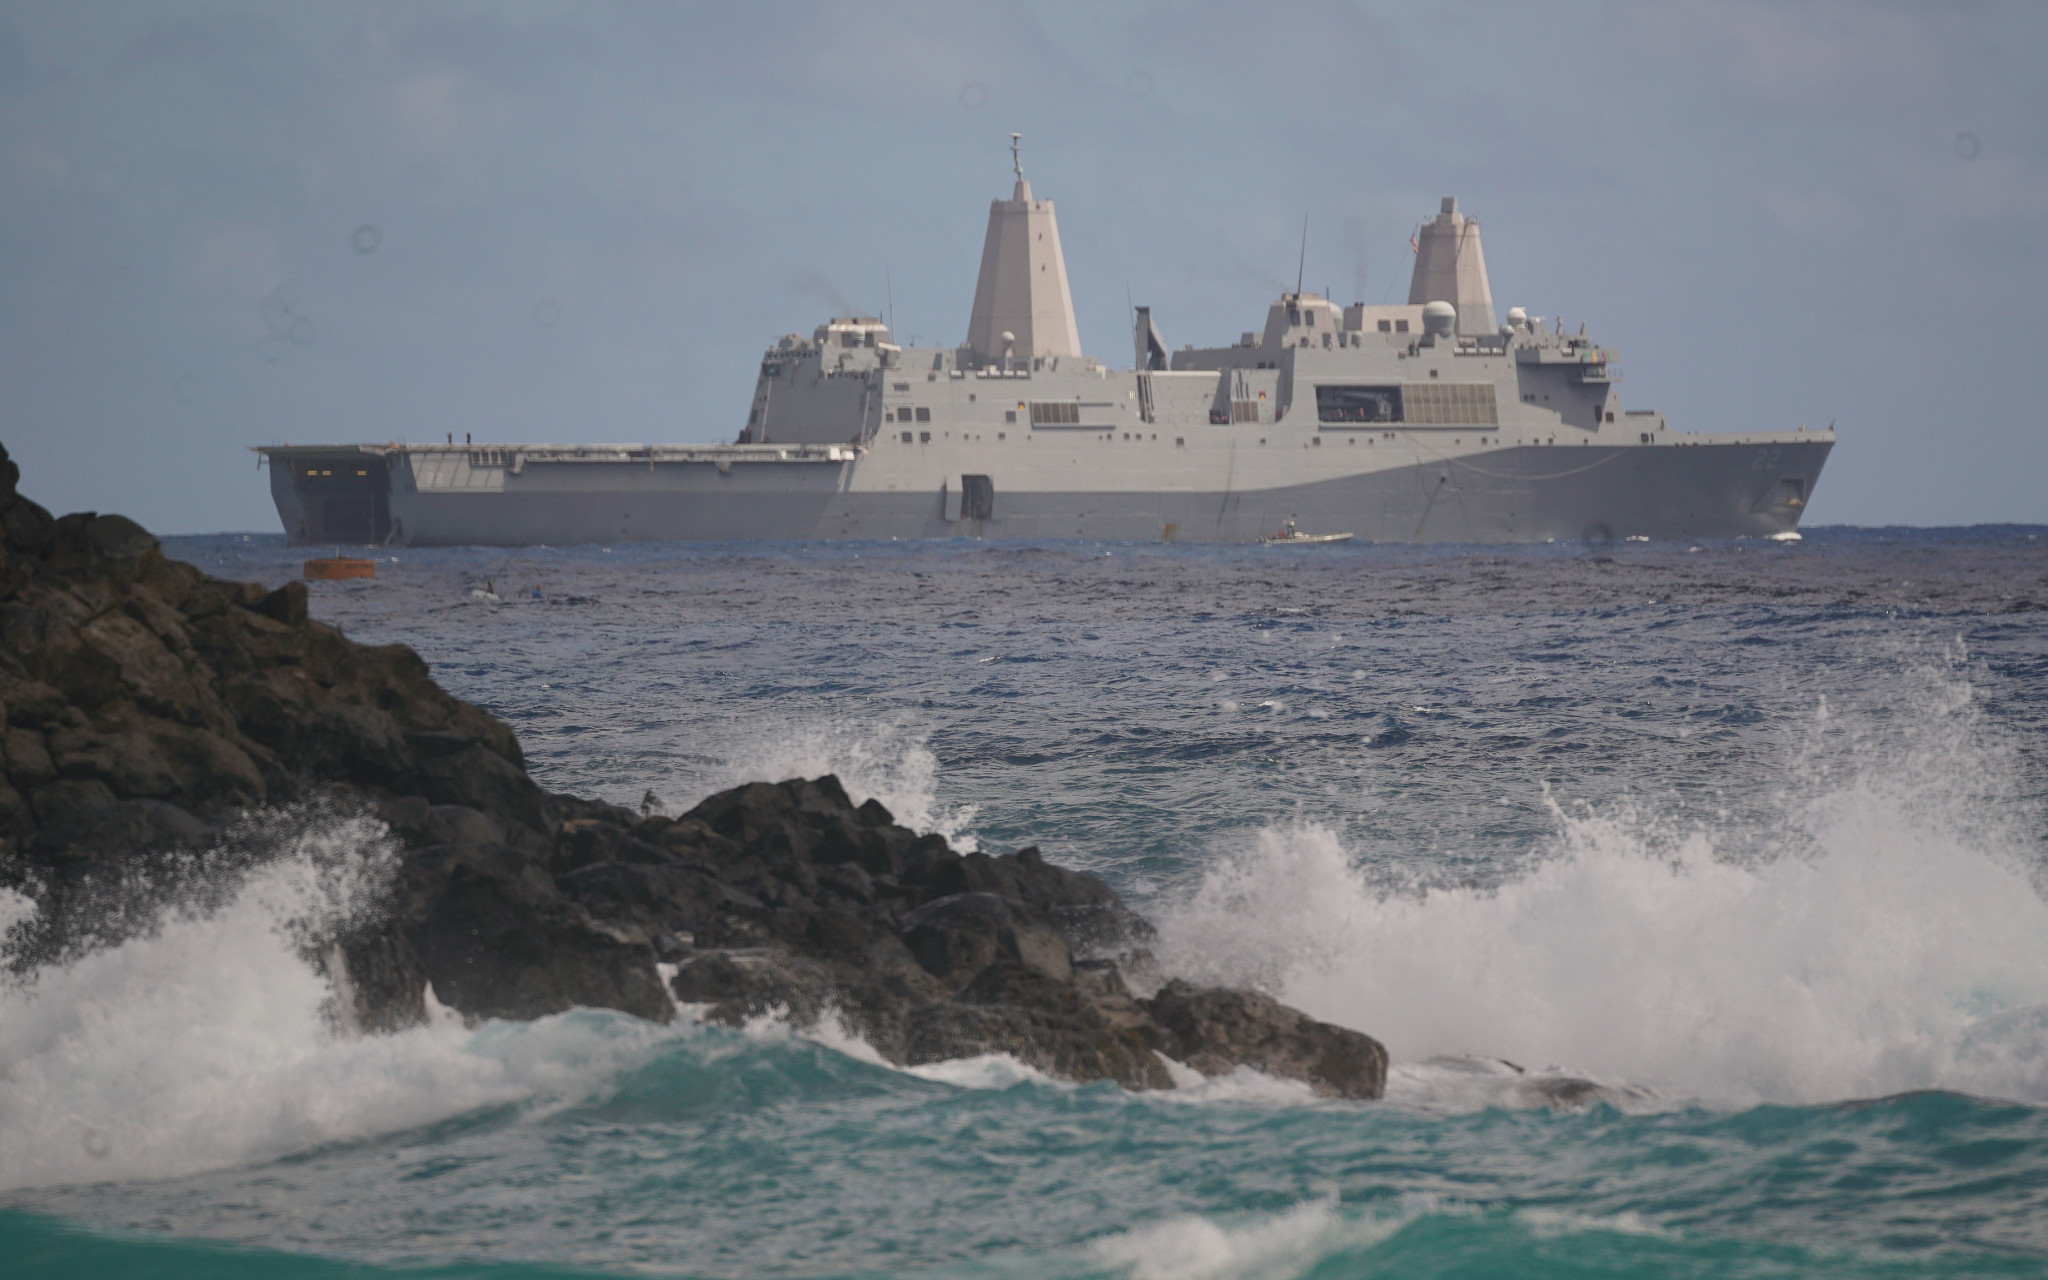 <p>The USS San Diego amphibious transport dock floats offshore Marine Corps Base Hawaii last weekend. Vessels emerged from the ship&#8217;s rear well deck to begin the assault on Pyramid Rock Beach in one of the final exercises of the 26-nation Rim of the Pacific war games.</p>